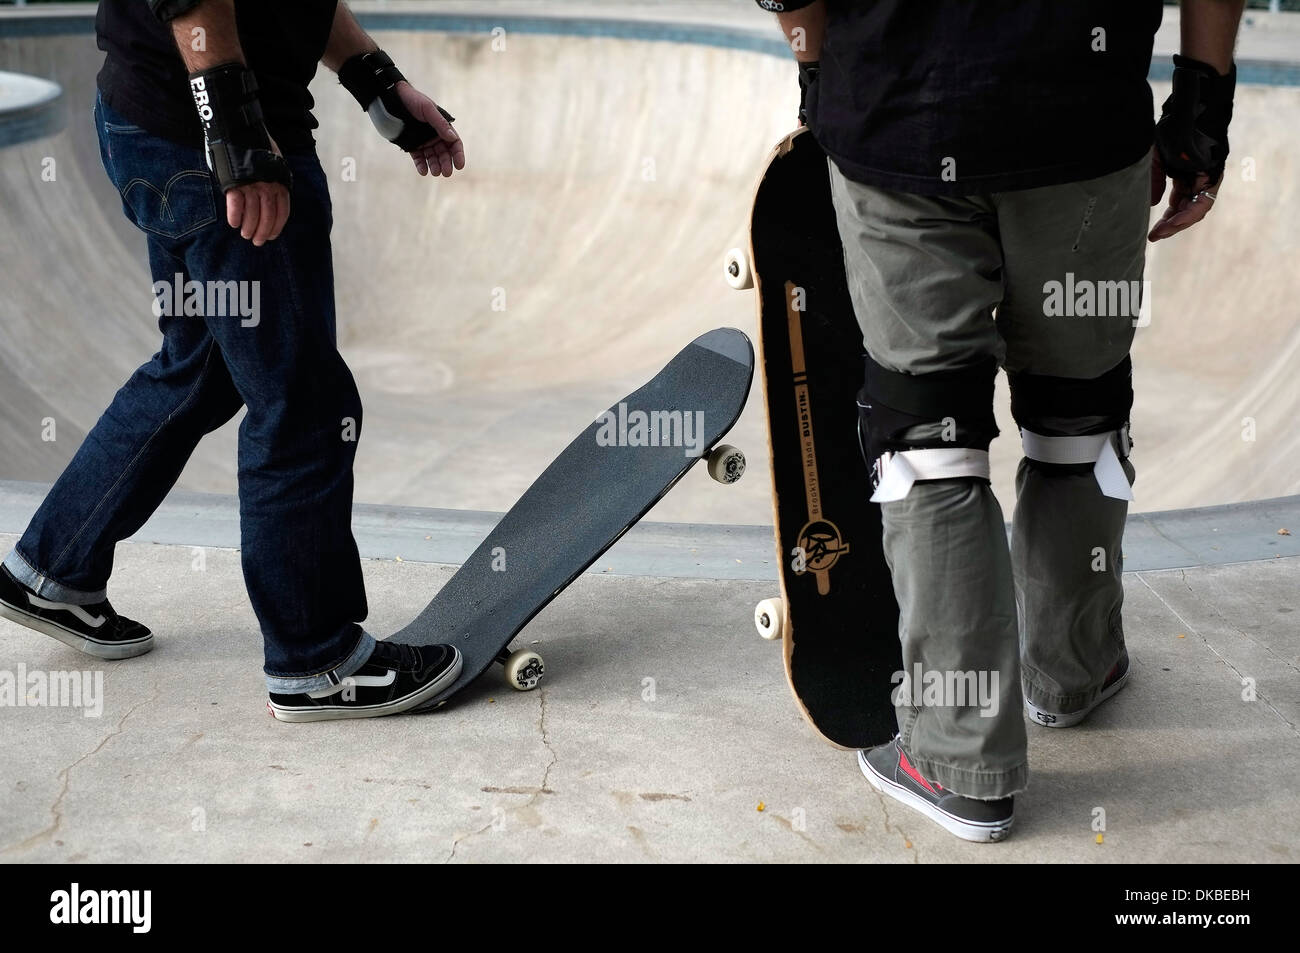 Two skateboarders prepare to ride in the bowl at the Chelsea Skatepark in Manhattan, New York City. - Stock Image